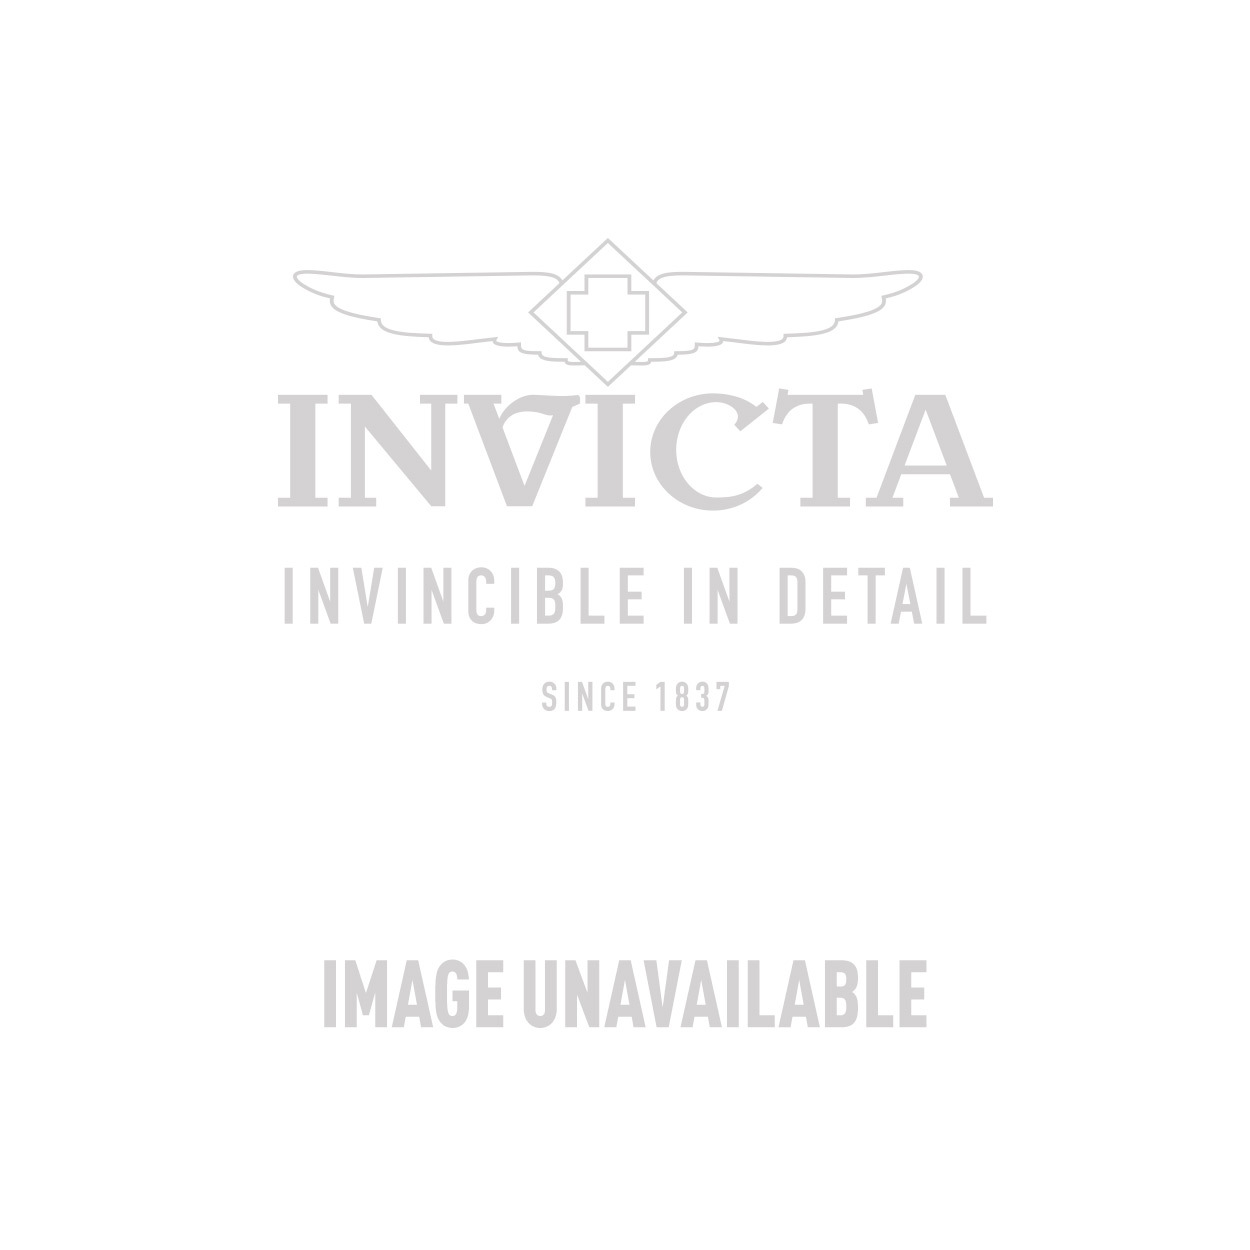 Invicta Sea Hunter  Quartz Watch - Stainless Steel case with Black tone Stainless Steel band - Model 10767